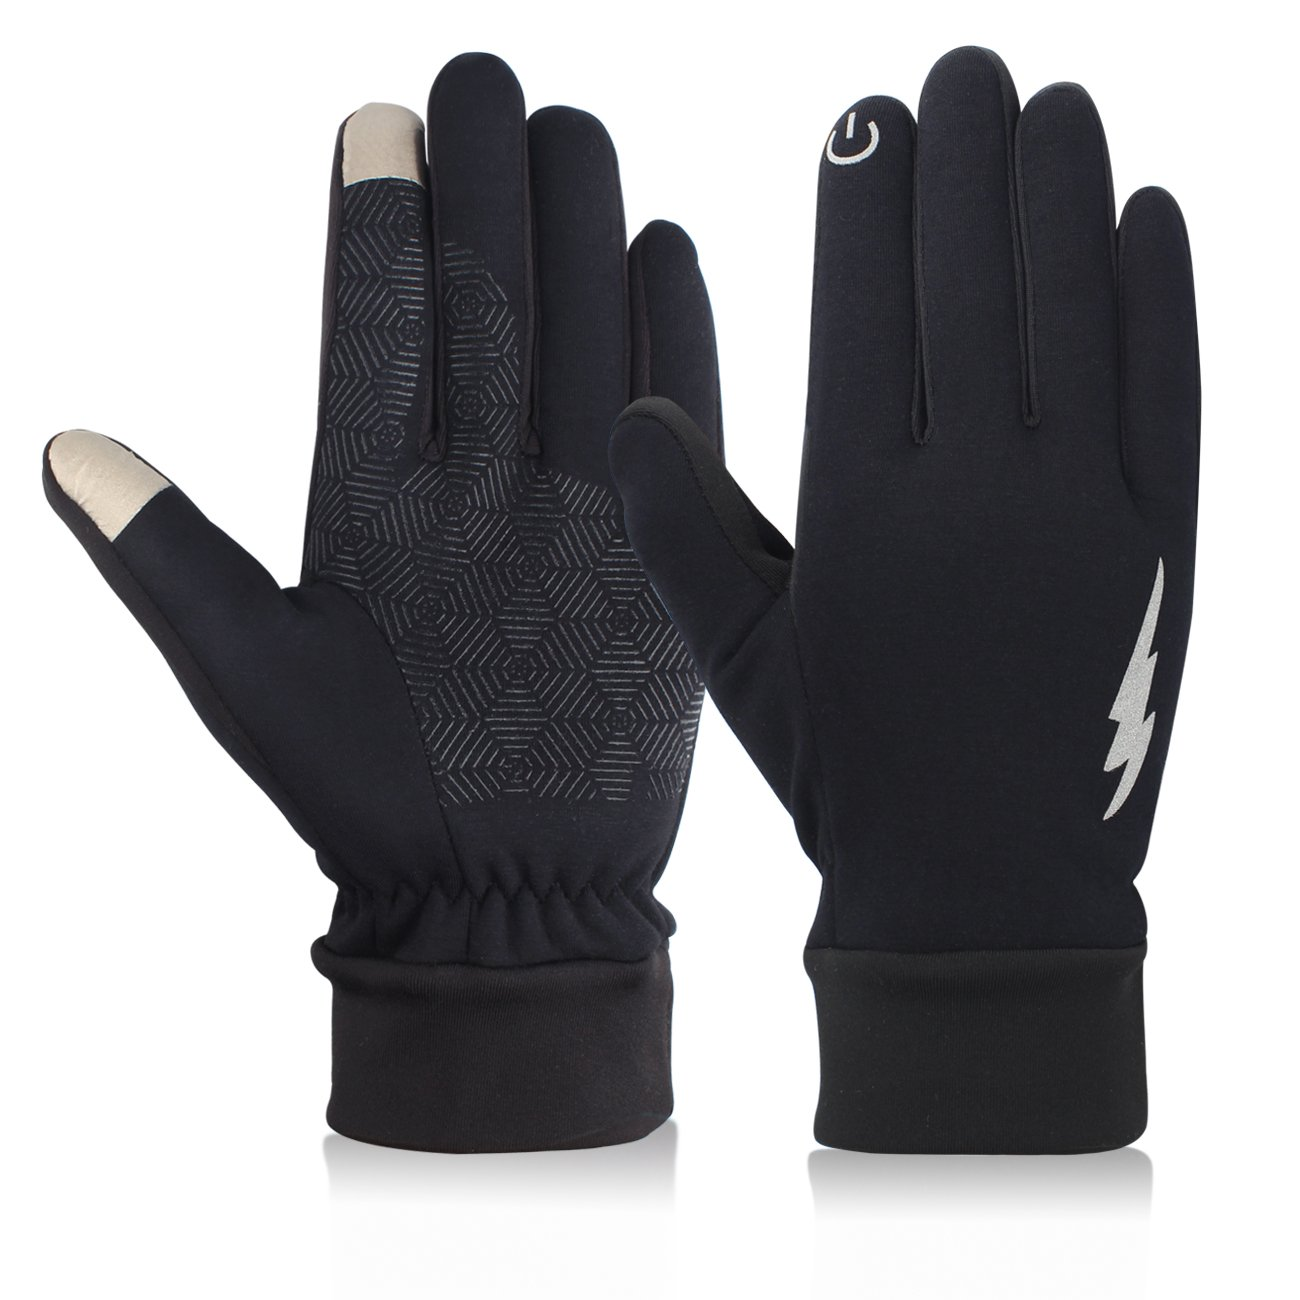 MCYS Winter Gloves - Touch Screen Gloves Warm Thermal Driving Running Cycling Gloves for Men Women (Black 1, XL)